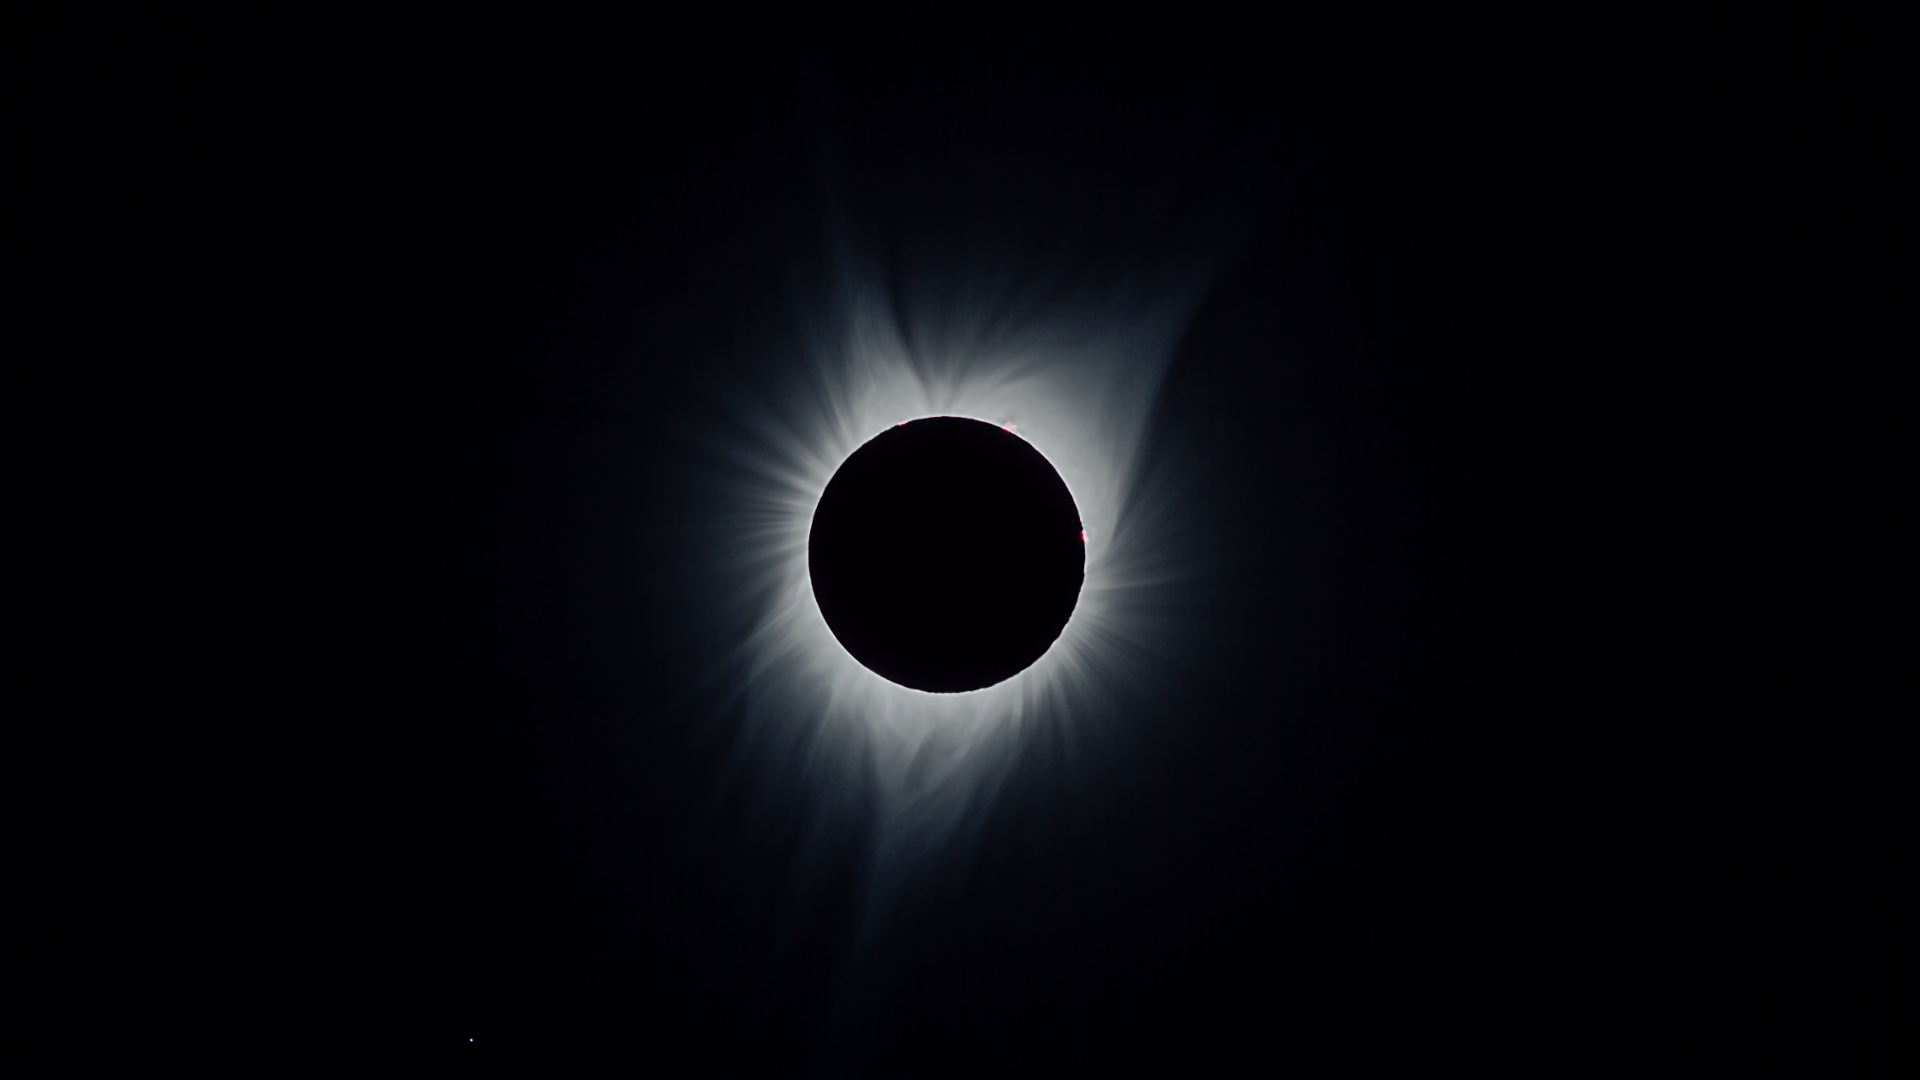 http://www.shakemid.com/pub/total_solar_eclipse_wall_1920.png